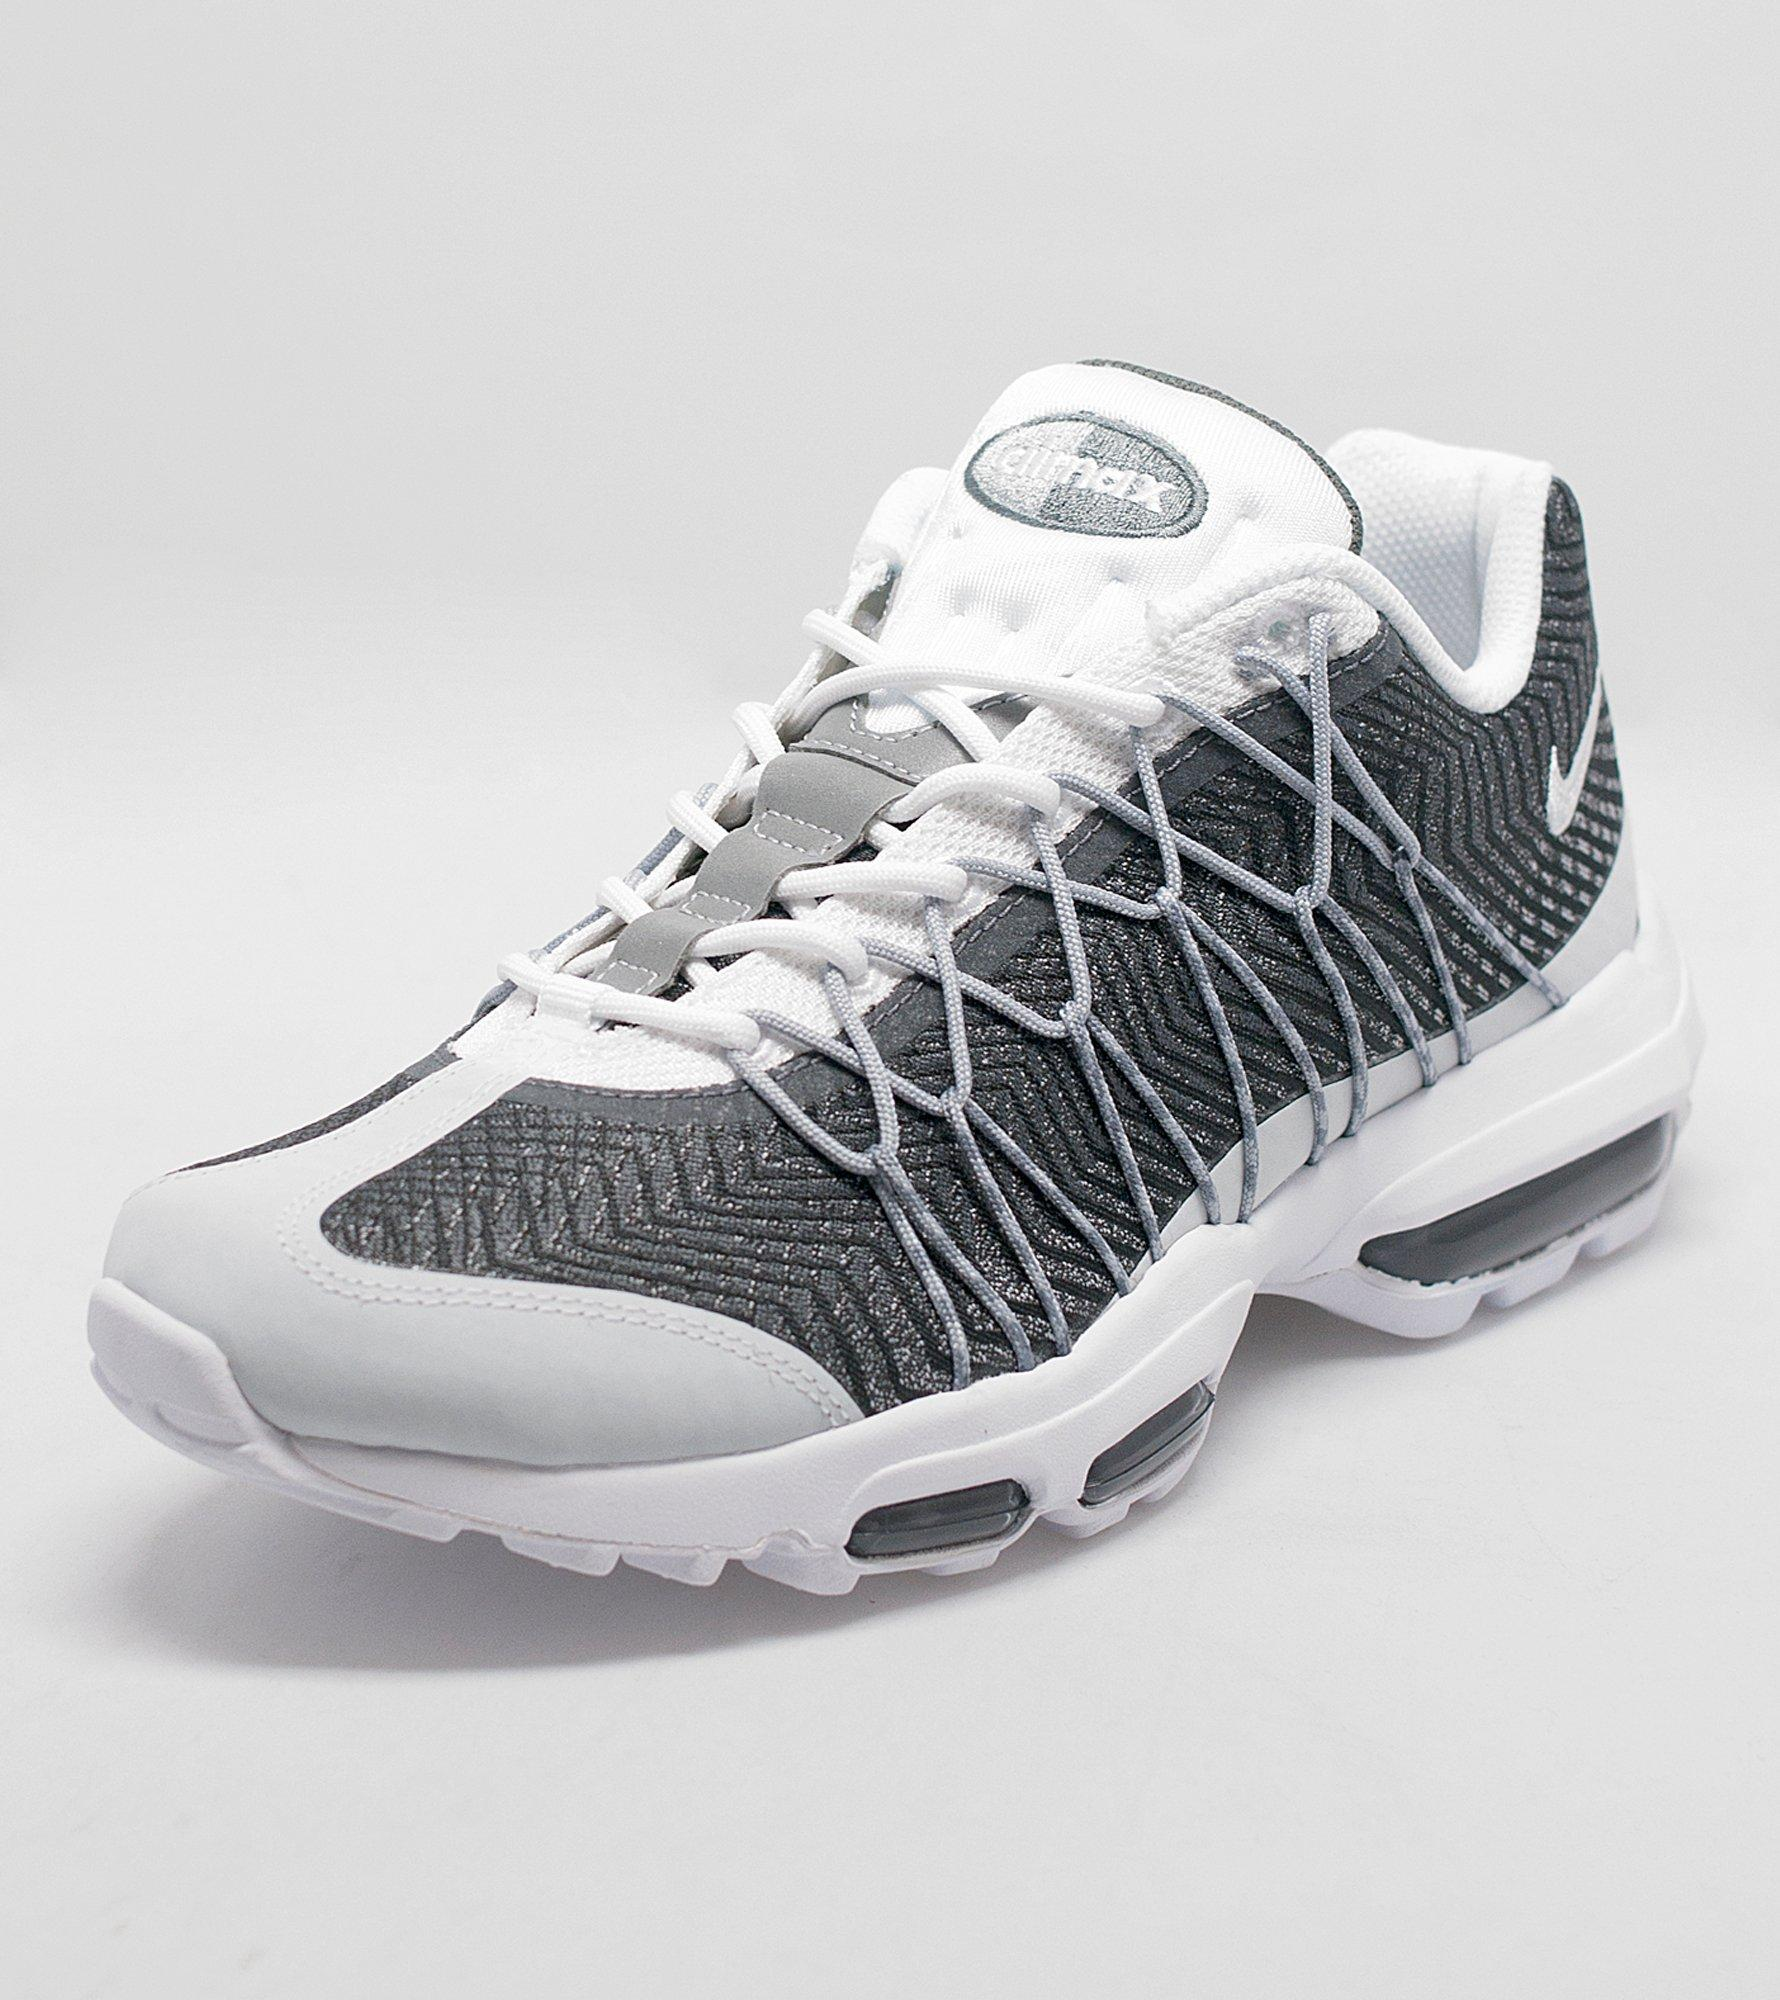 Nike Air Max 95 Ultra Jacquard Grey